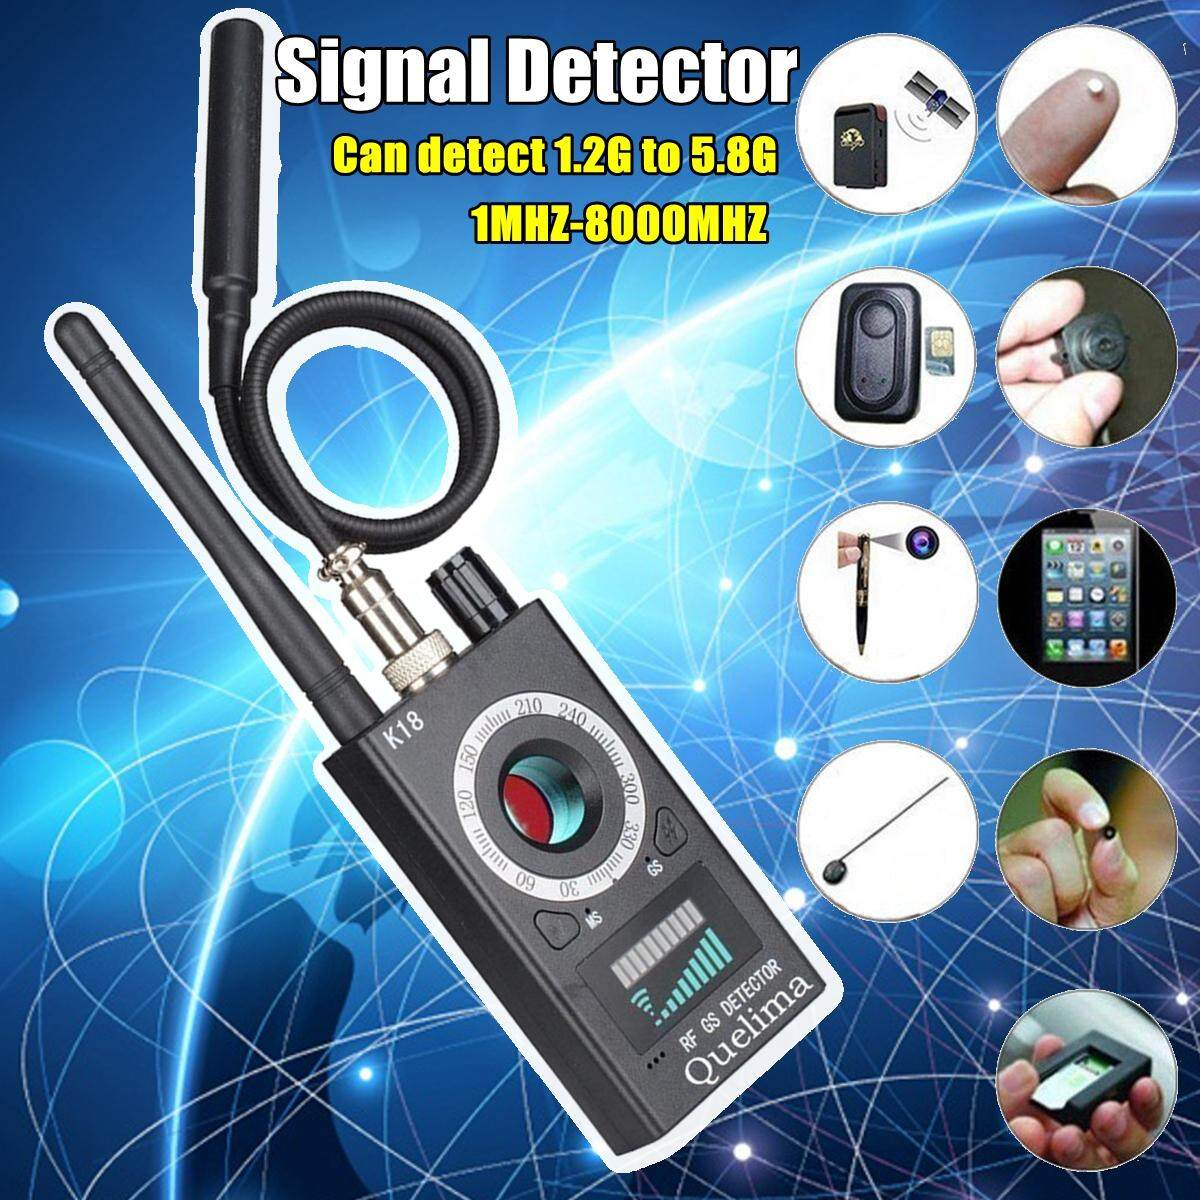 Quelima K18 Handheld Signal Detector for detecting Cell phone signal GPS  locator Tracker Wireless camera and Bug device